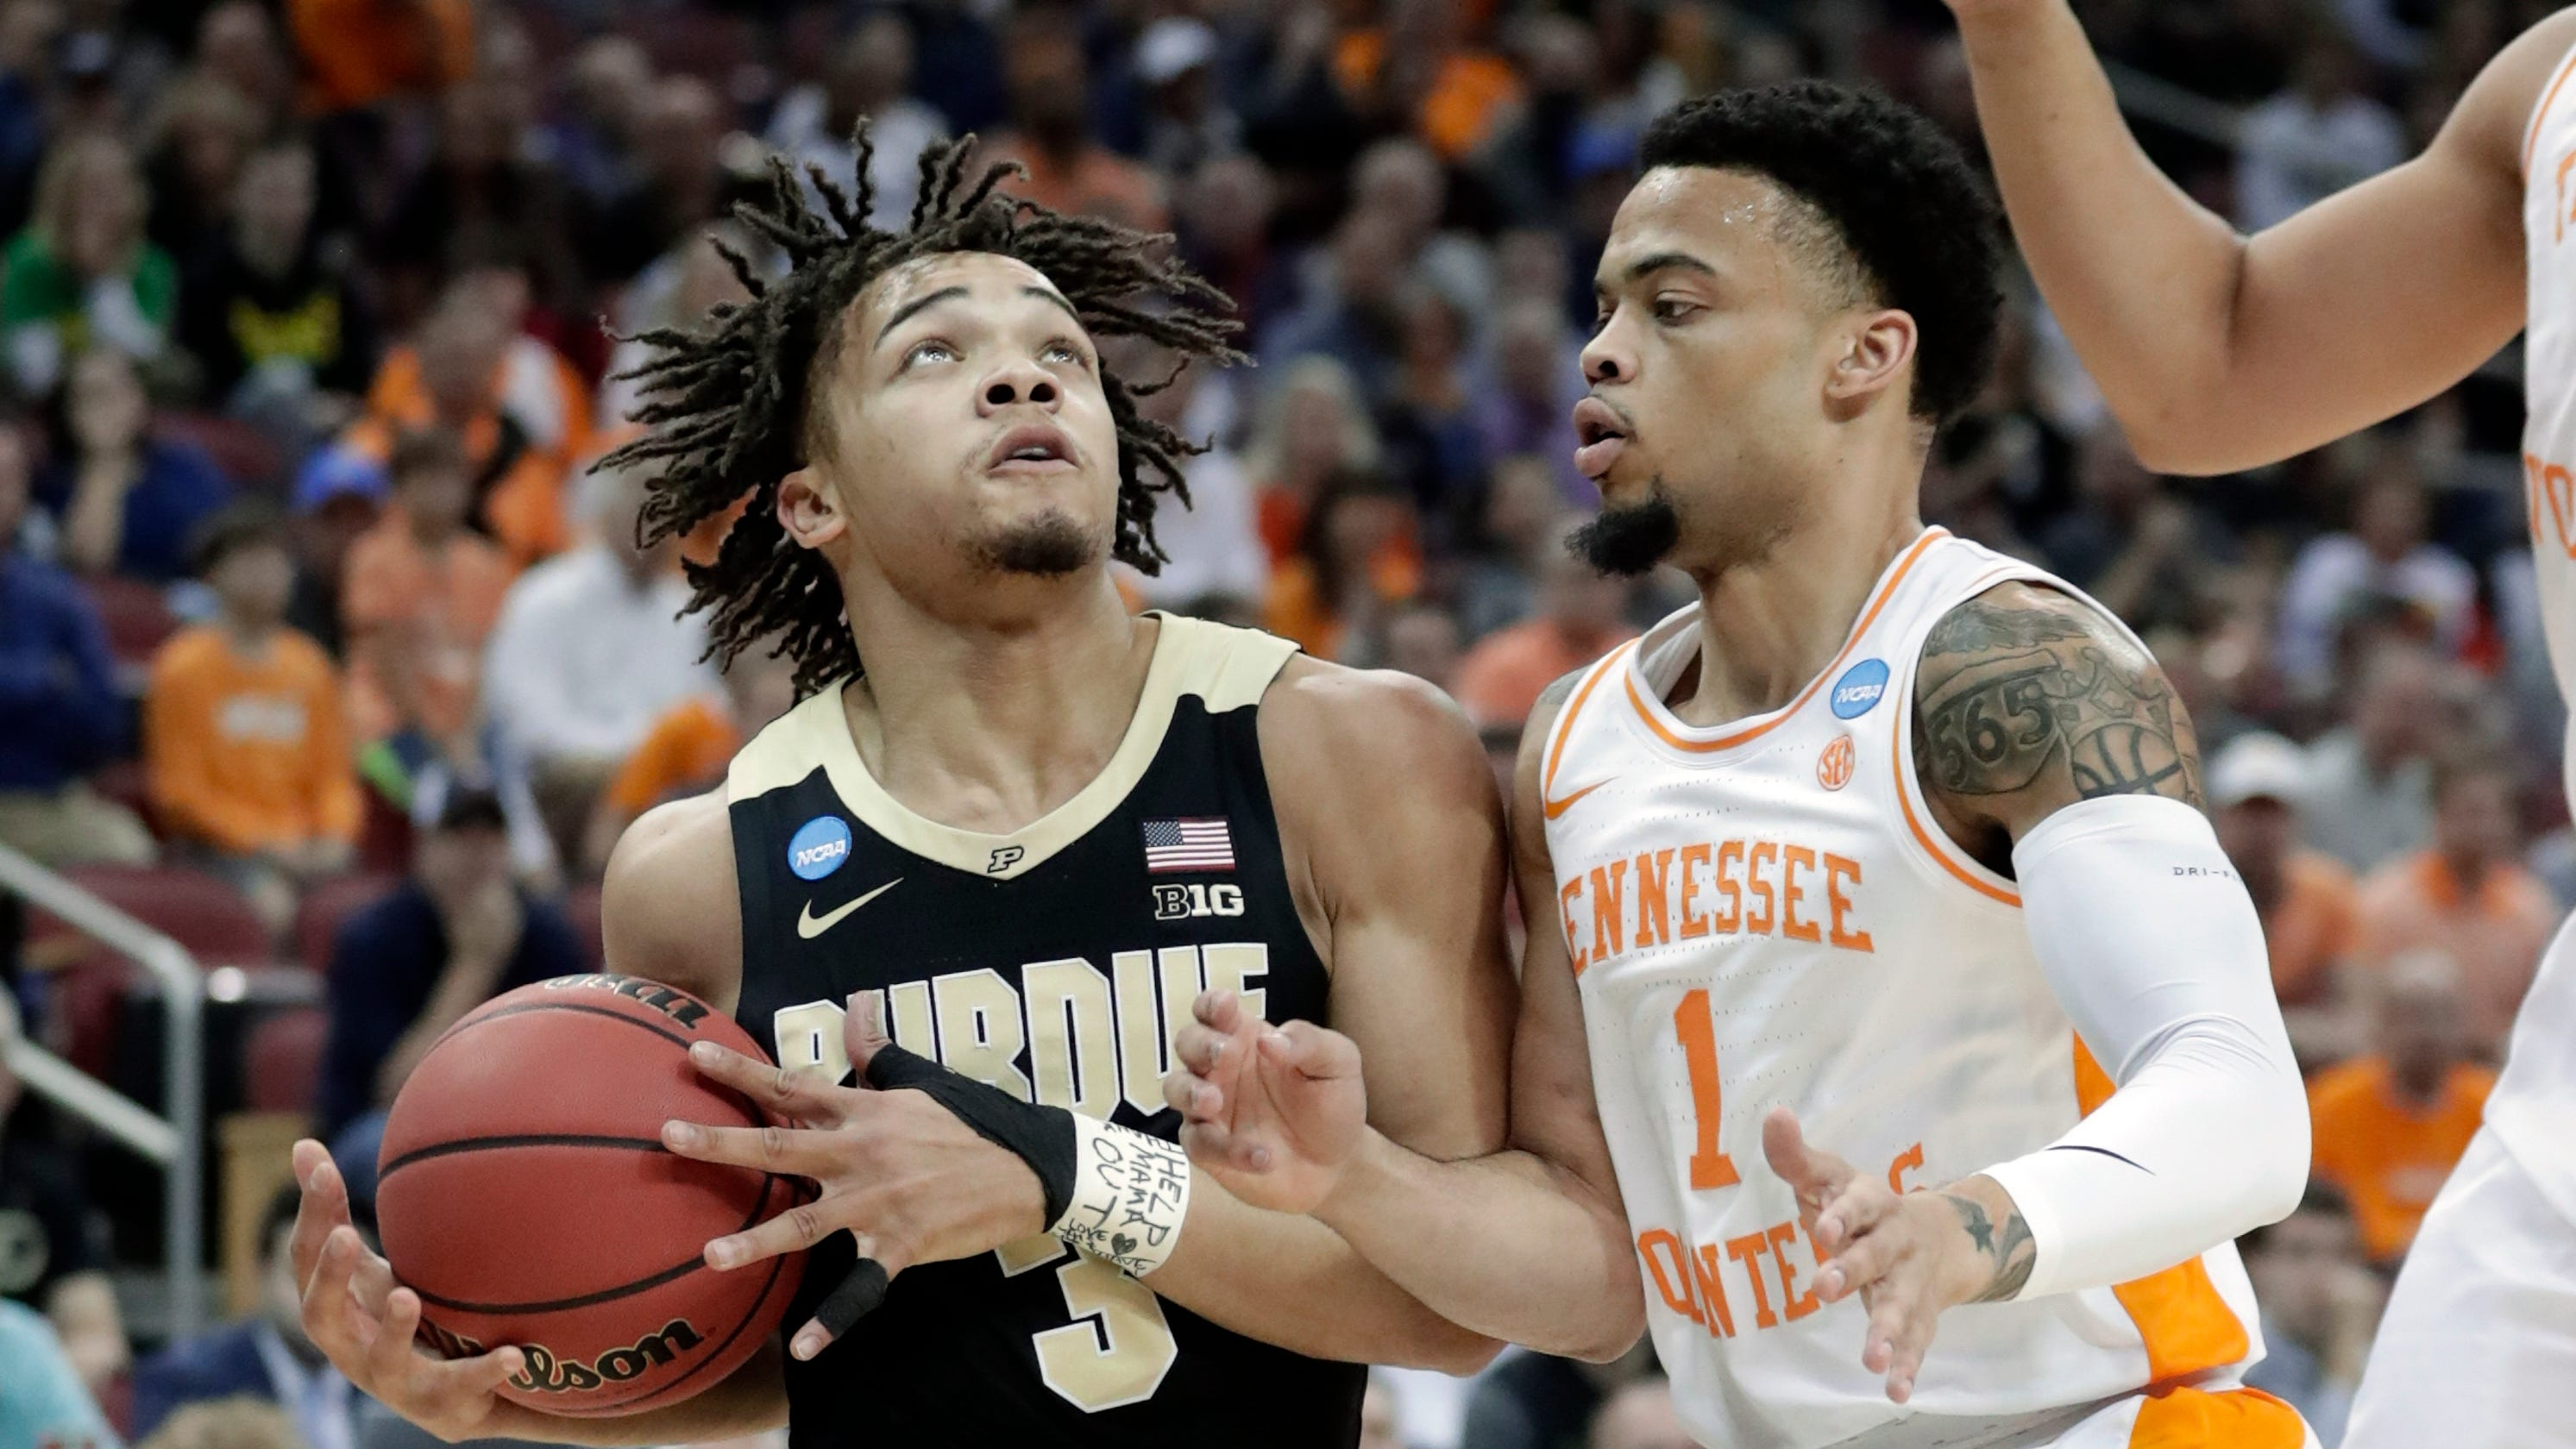 March Madness Did Lamonte Turner Foul Carsen Edwards